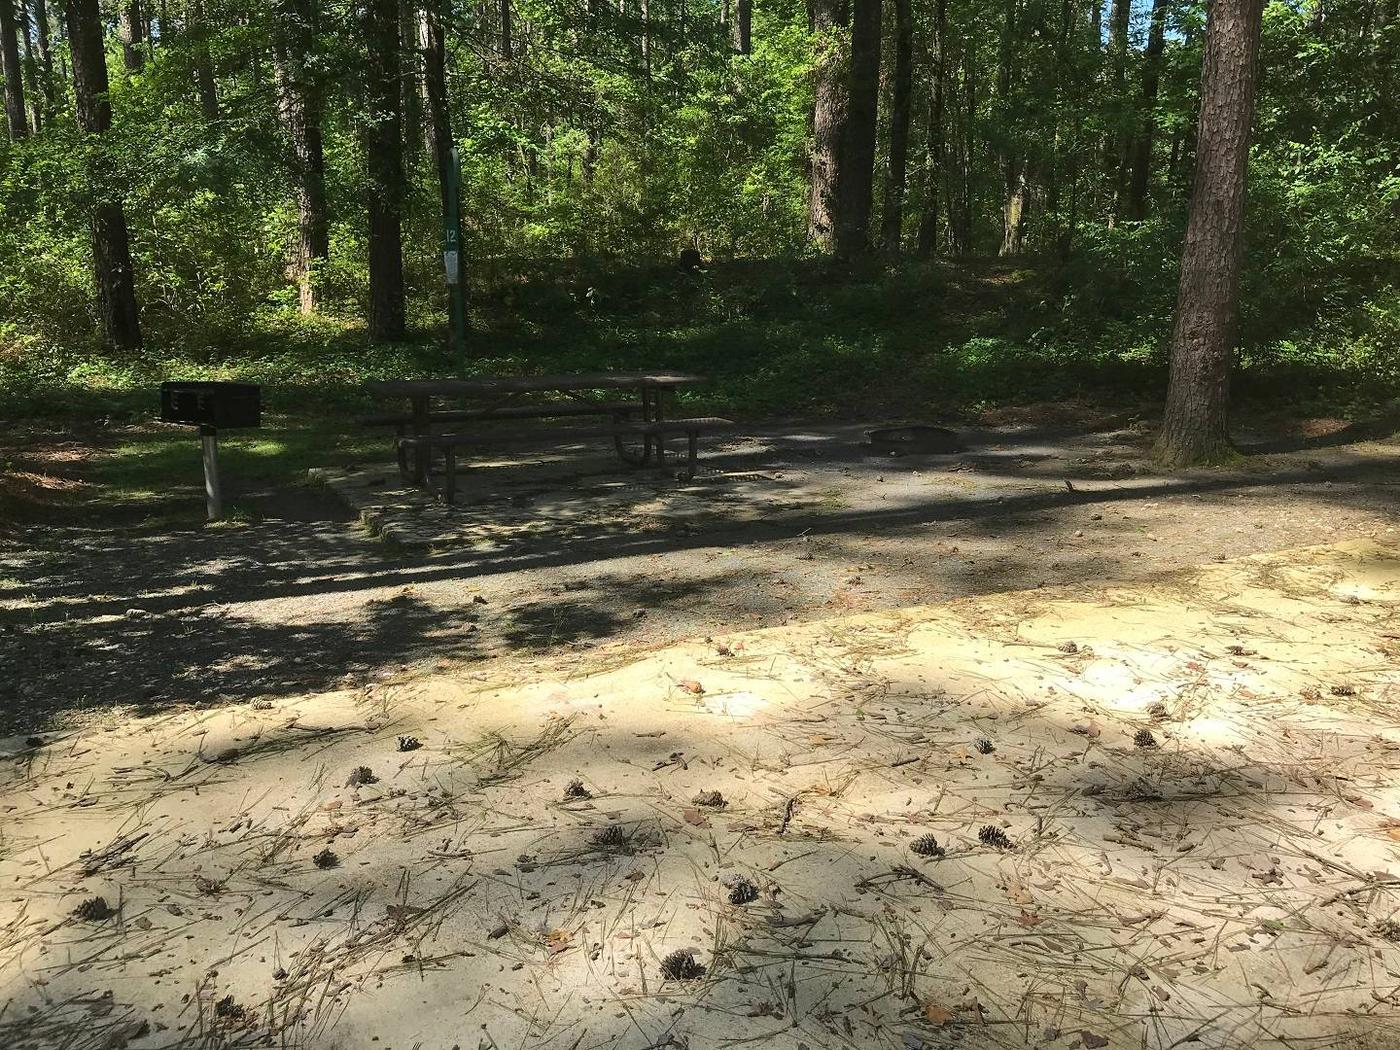 Shaded Class A Campsite #12.Shaded Class A Campsite #12. RV pad, water, and 20/30/50 AMP electric hook-ups as well as basic campsite amenities including a picnic table, lantern post, fire ring, trash can and grill.